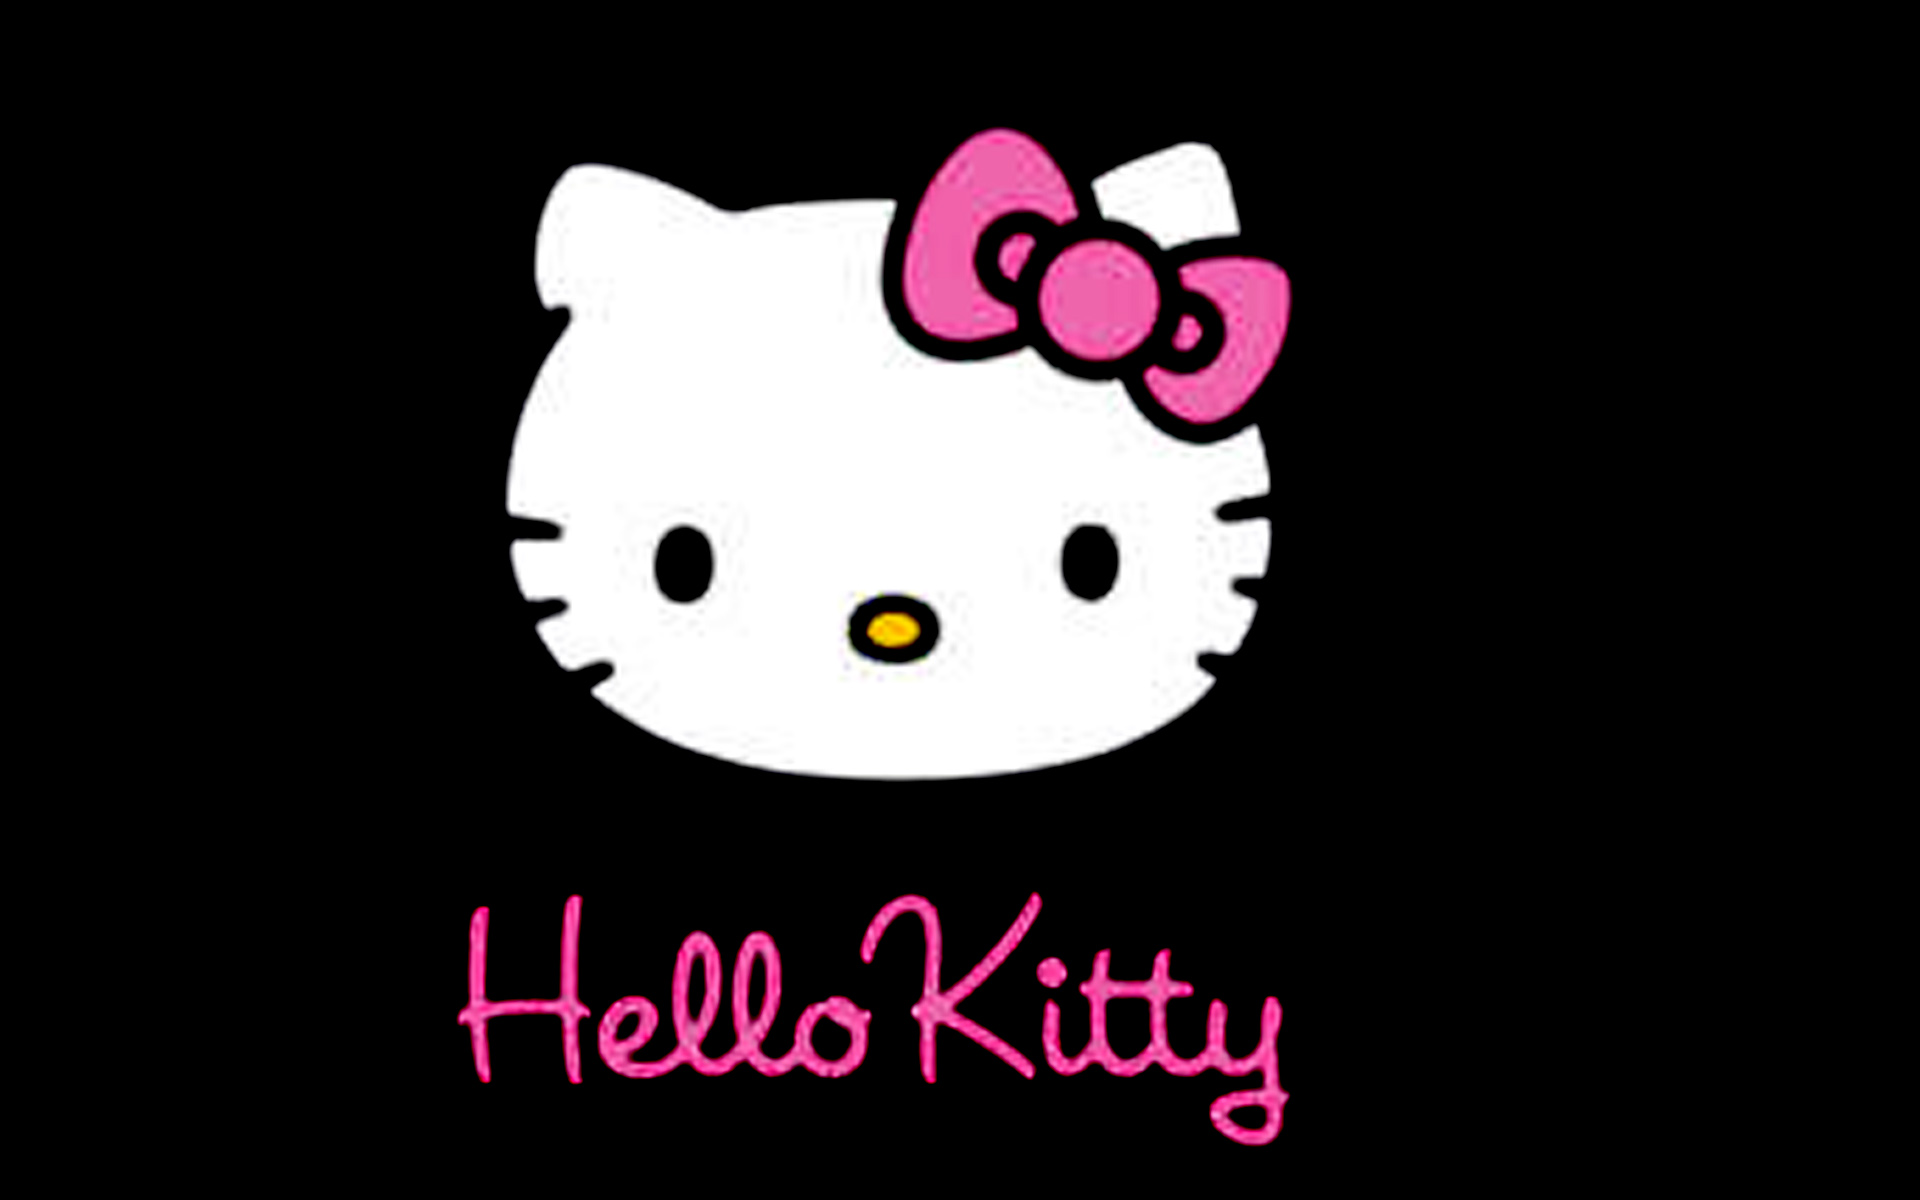 Hello Kitty Black Backgrounds hd wallpaper background desktop 1920x1200